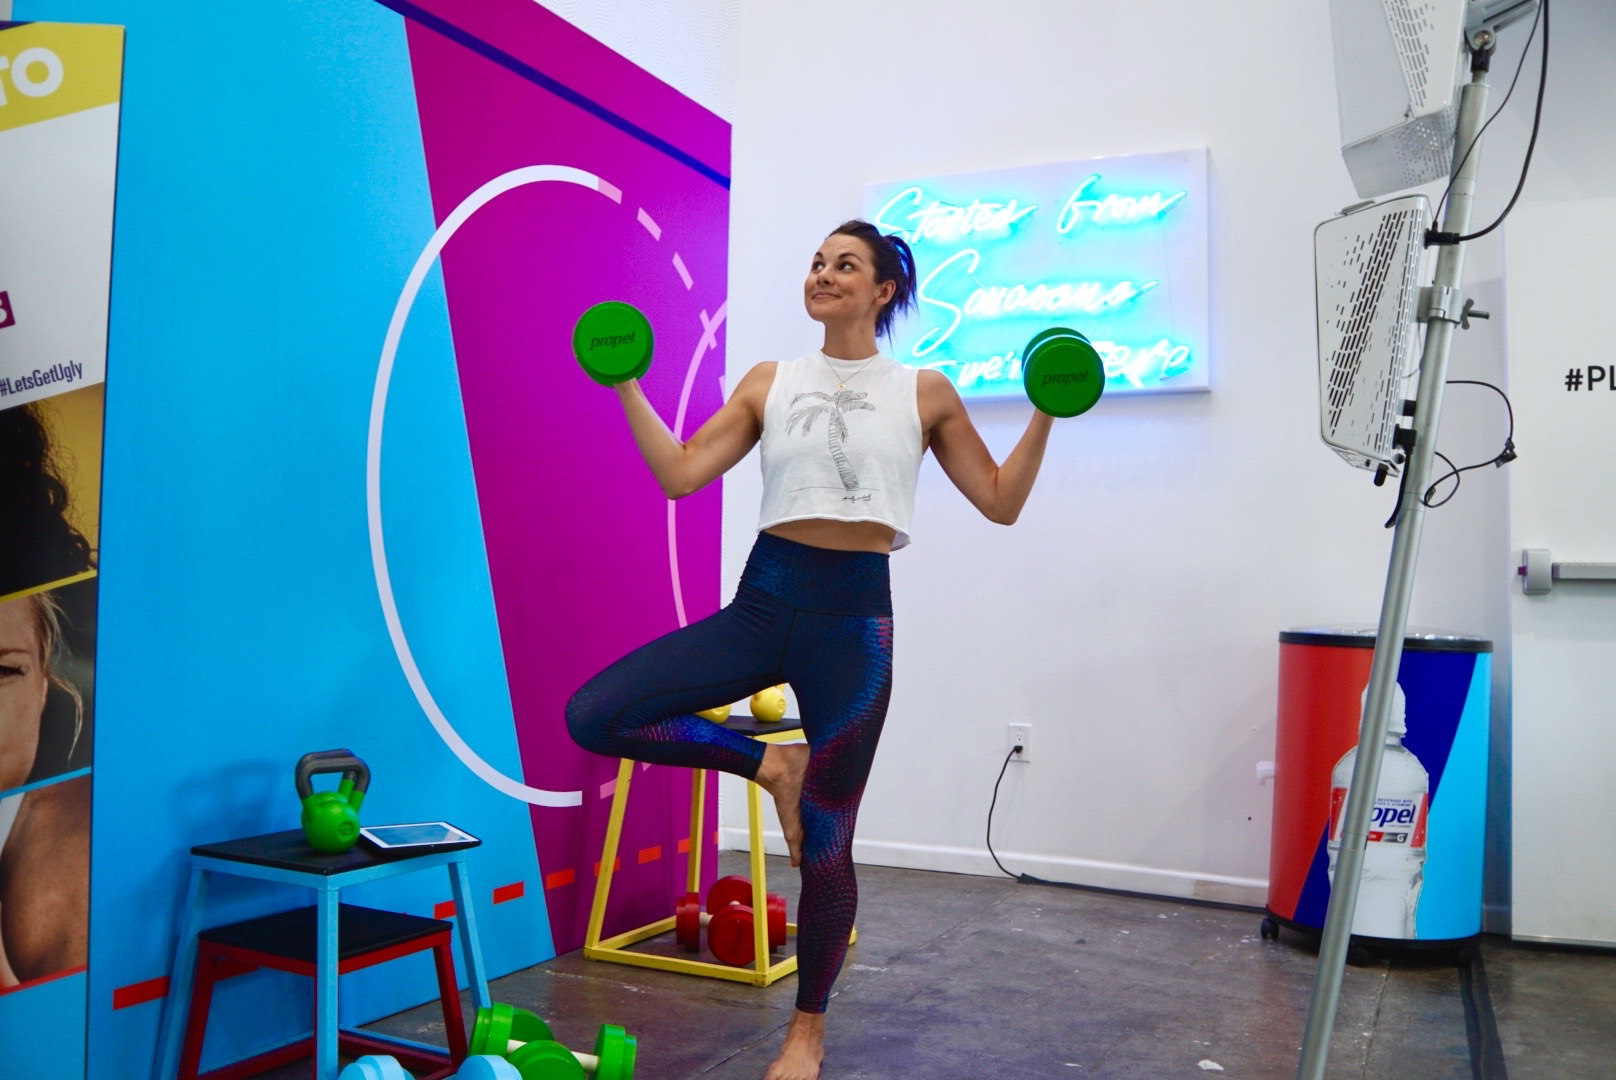 playlist yoga propel co:labs event